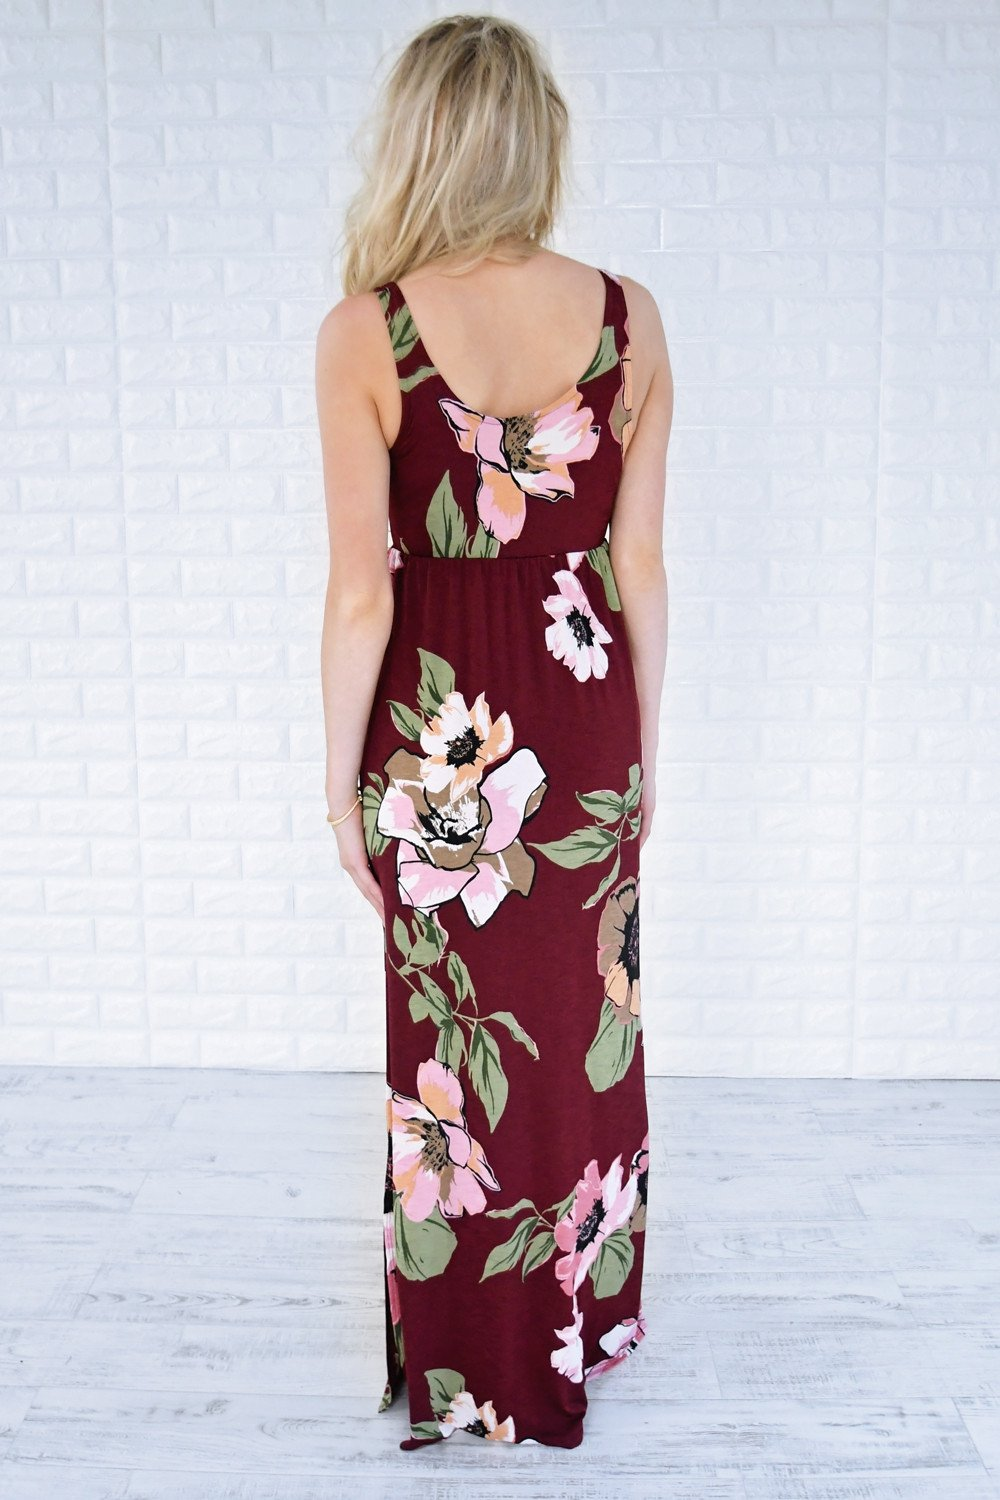 Bora Bora Babe Floral Maxi Dress